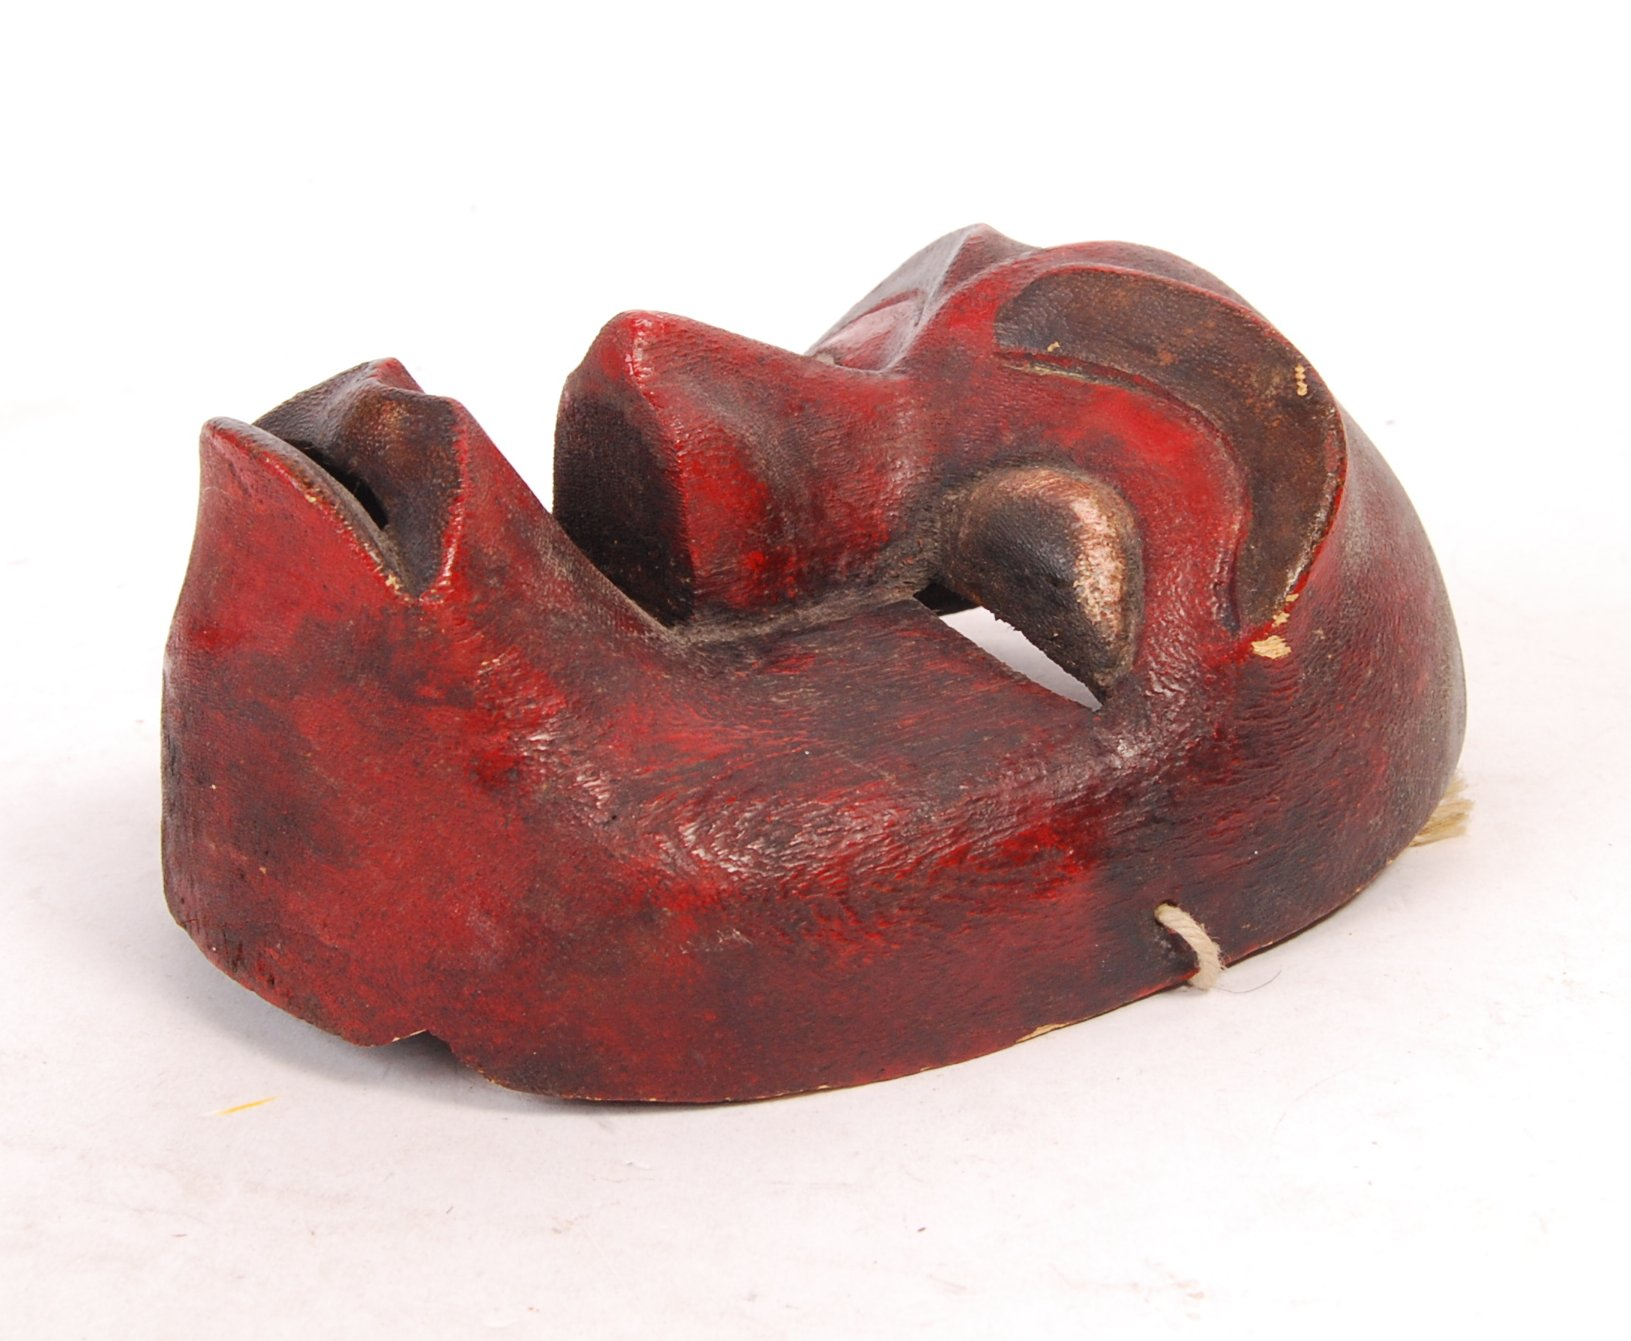 Lot 325 - EARLY 20TH CENTURY WEST AFRICAN PAINTED CARNIVAL / RITUAL MASK